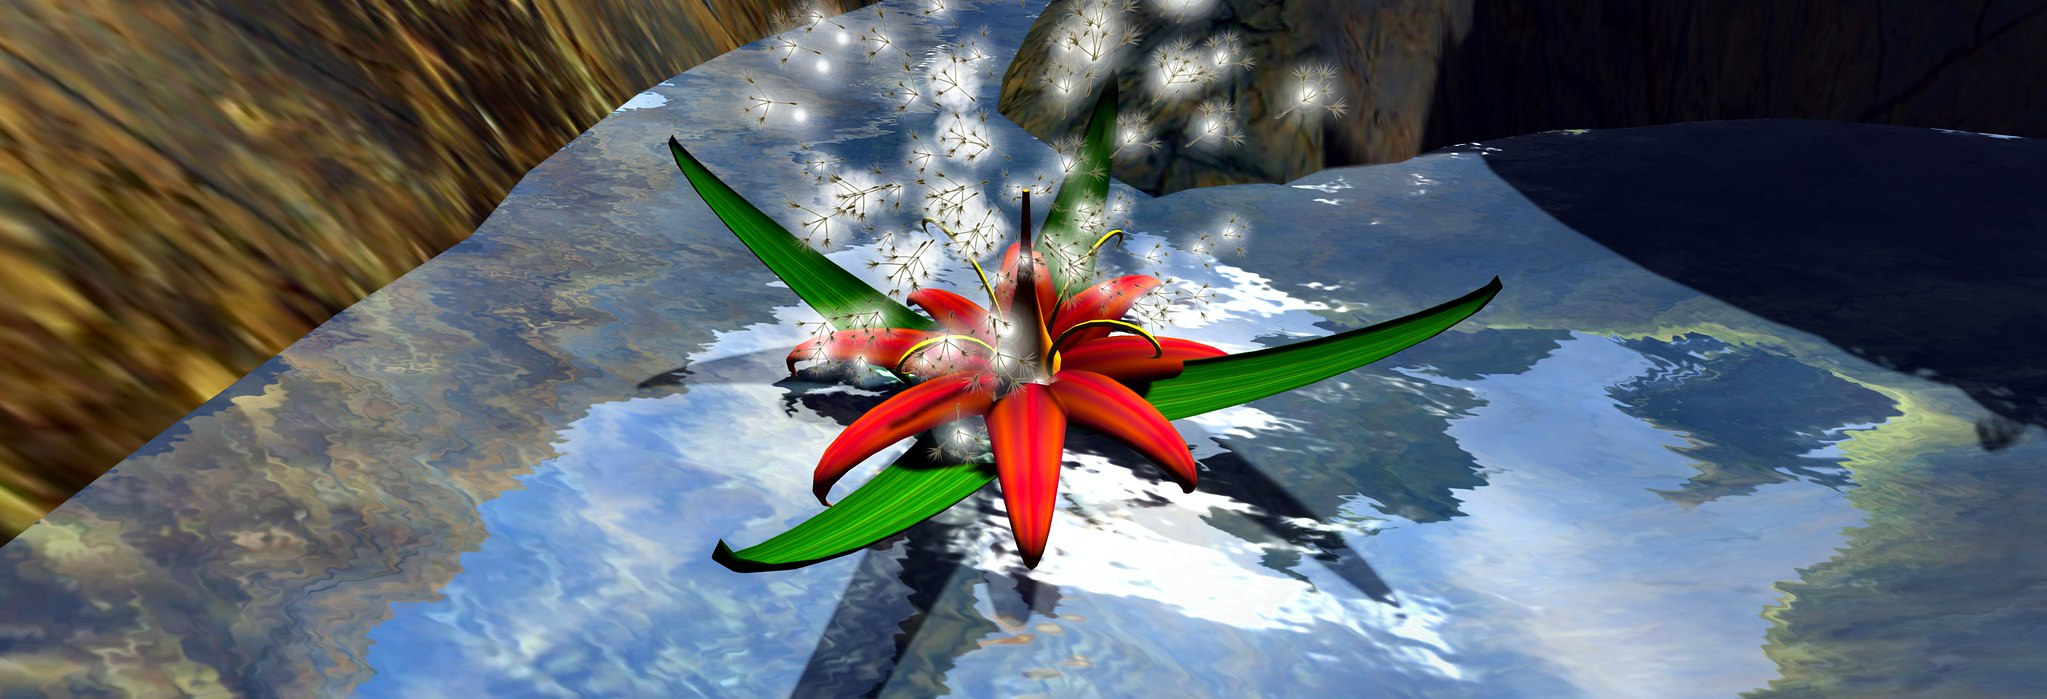 Large flower, spores burst: all prims and particles